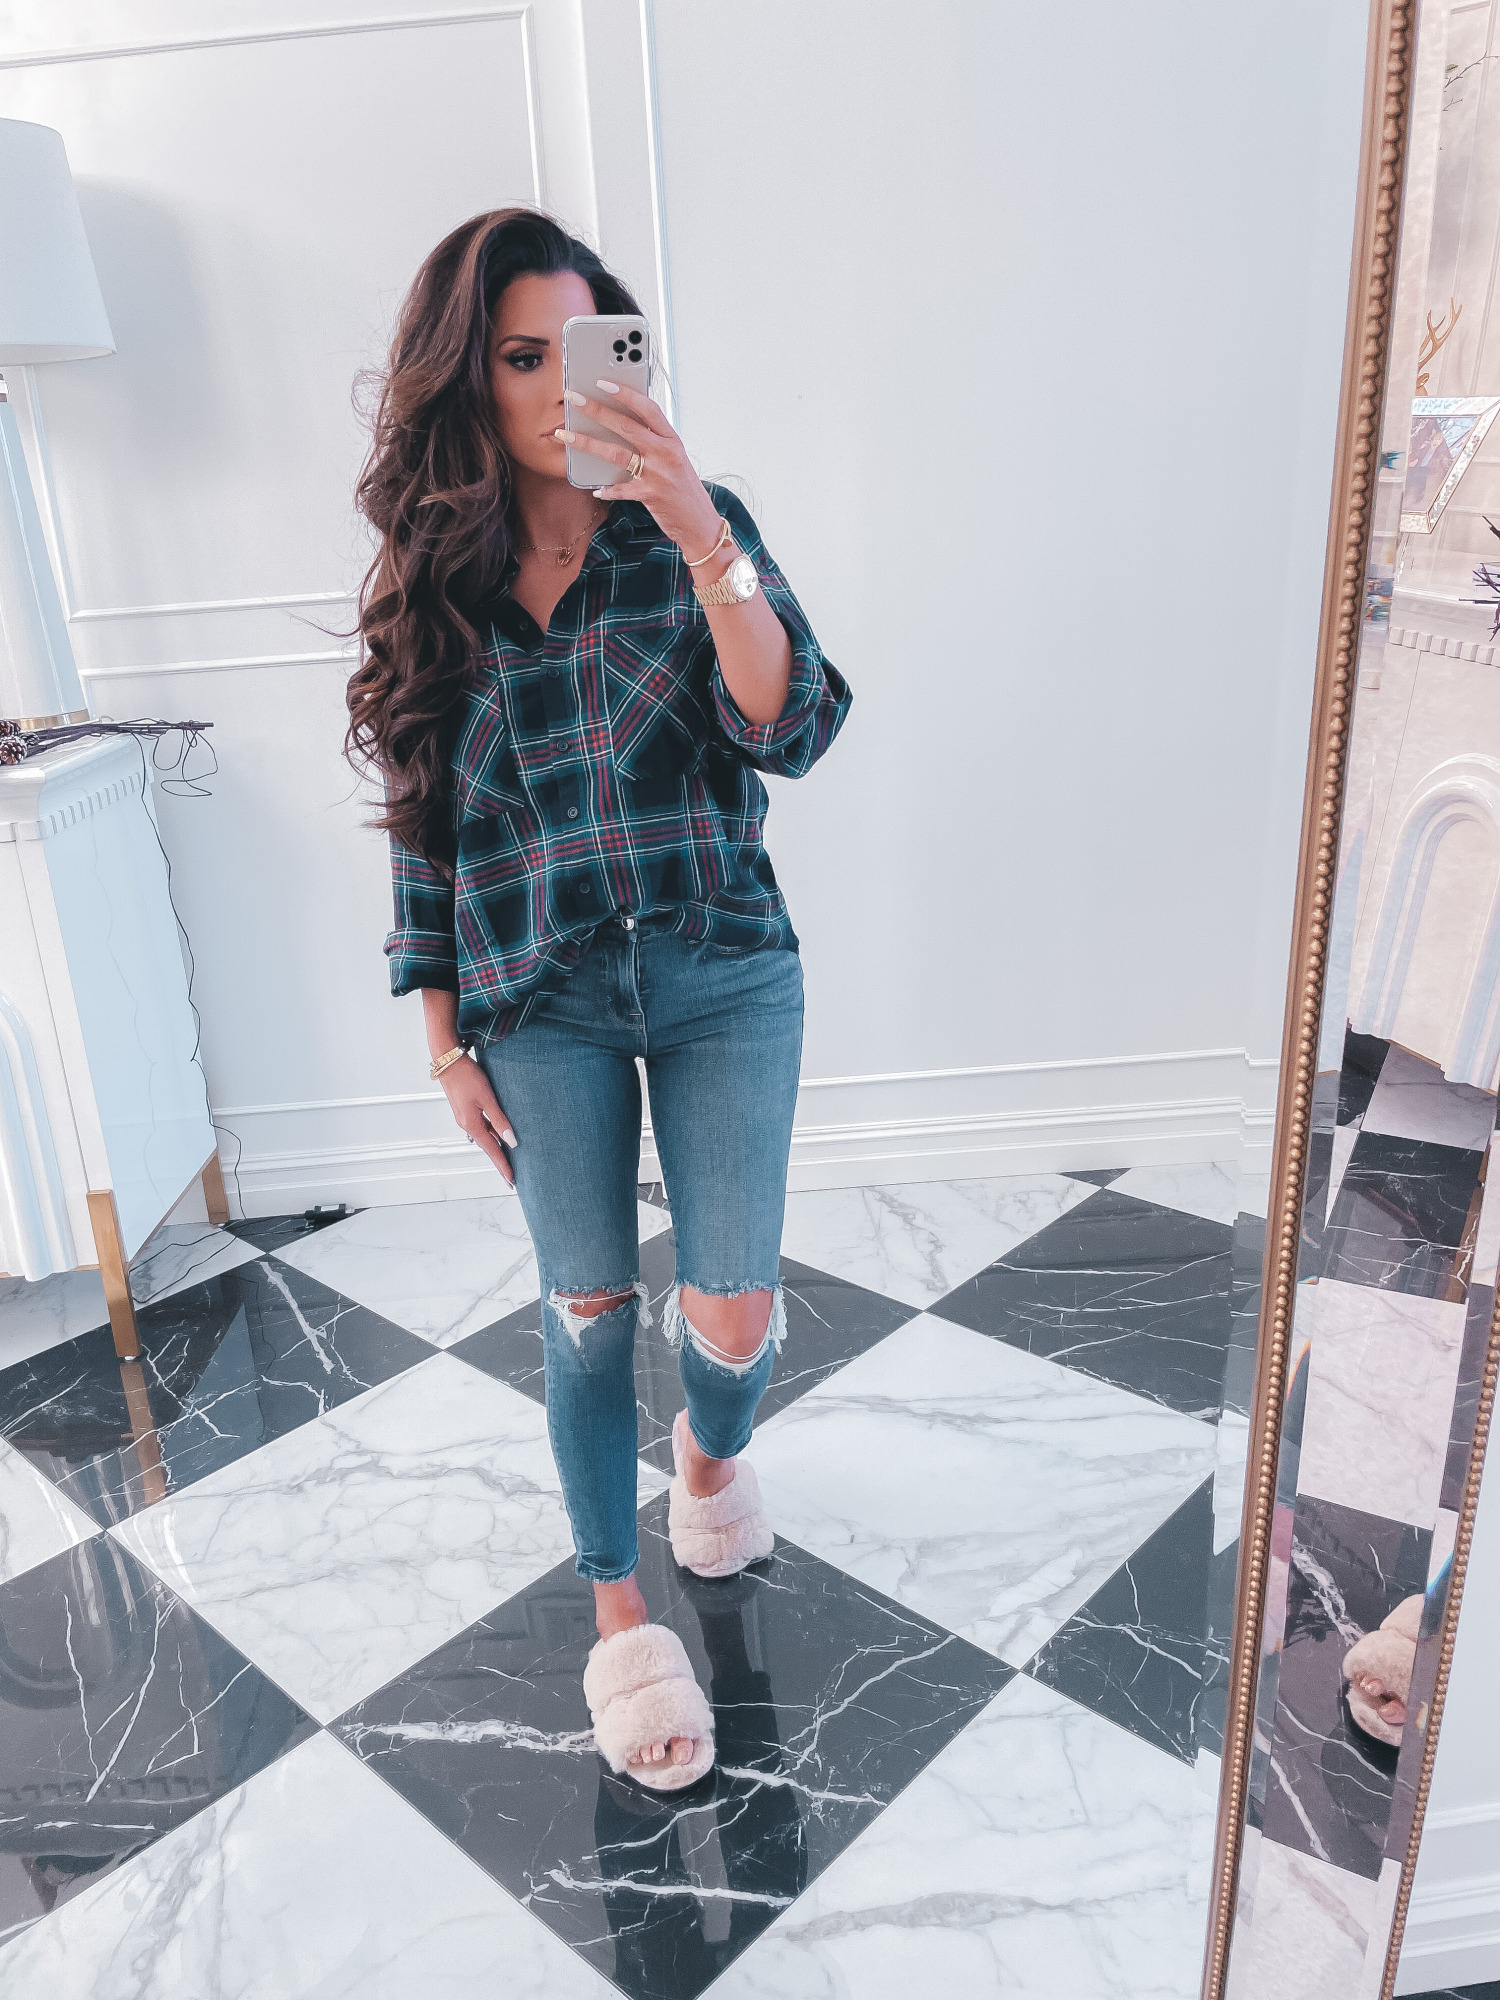 best black friday cyber monday sales 2020, top black friday sales 2020, emily gemma1 |2020 Black Friday Deals by popular US life and style blog, The Sweetest Thing: image of Emily Gemma wearing a plaid button up shirt, distressed denim, and fuzzy pink sandal slippers.